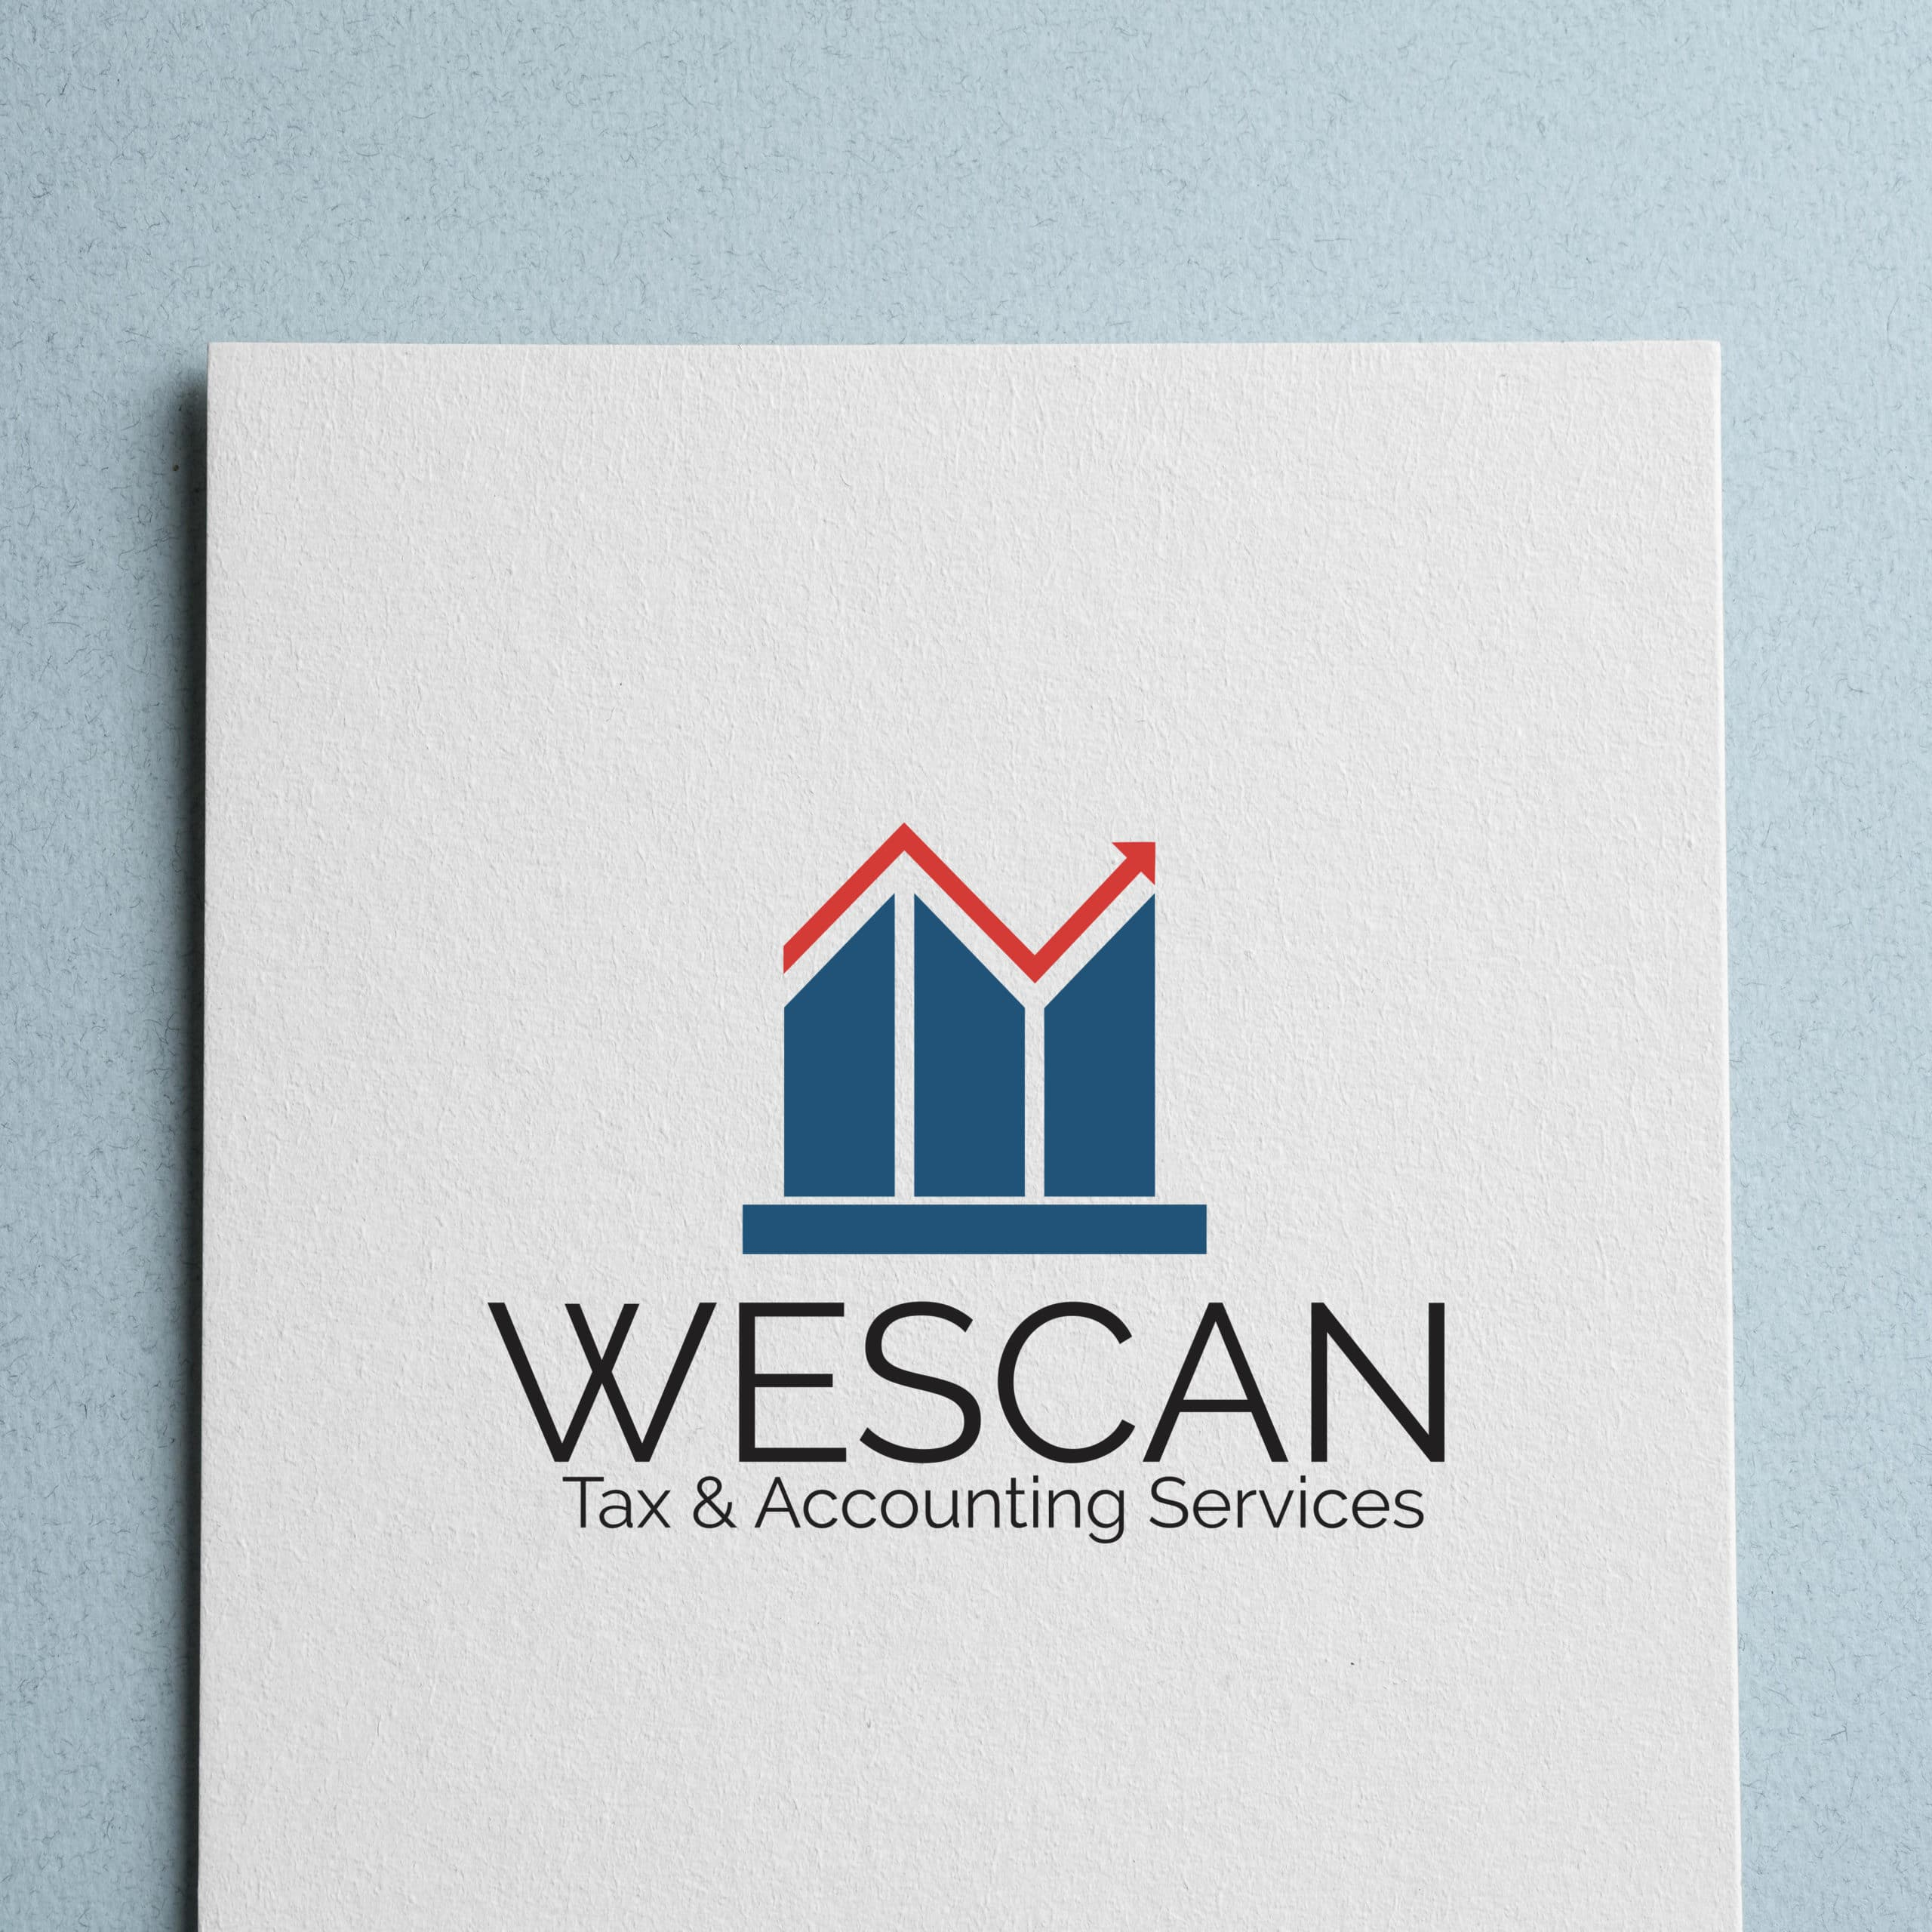 Wescan Tax & Accounting Services